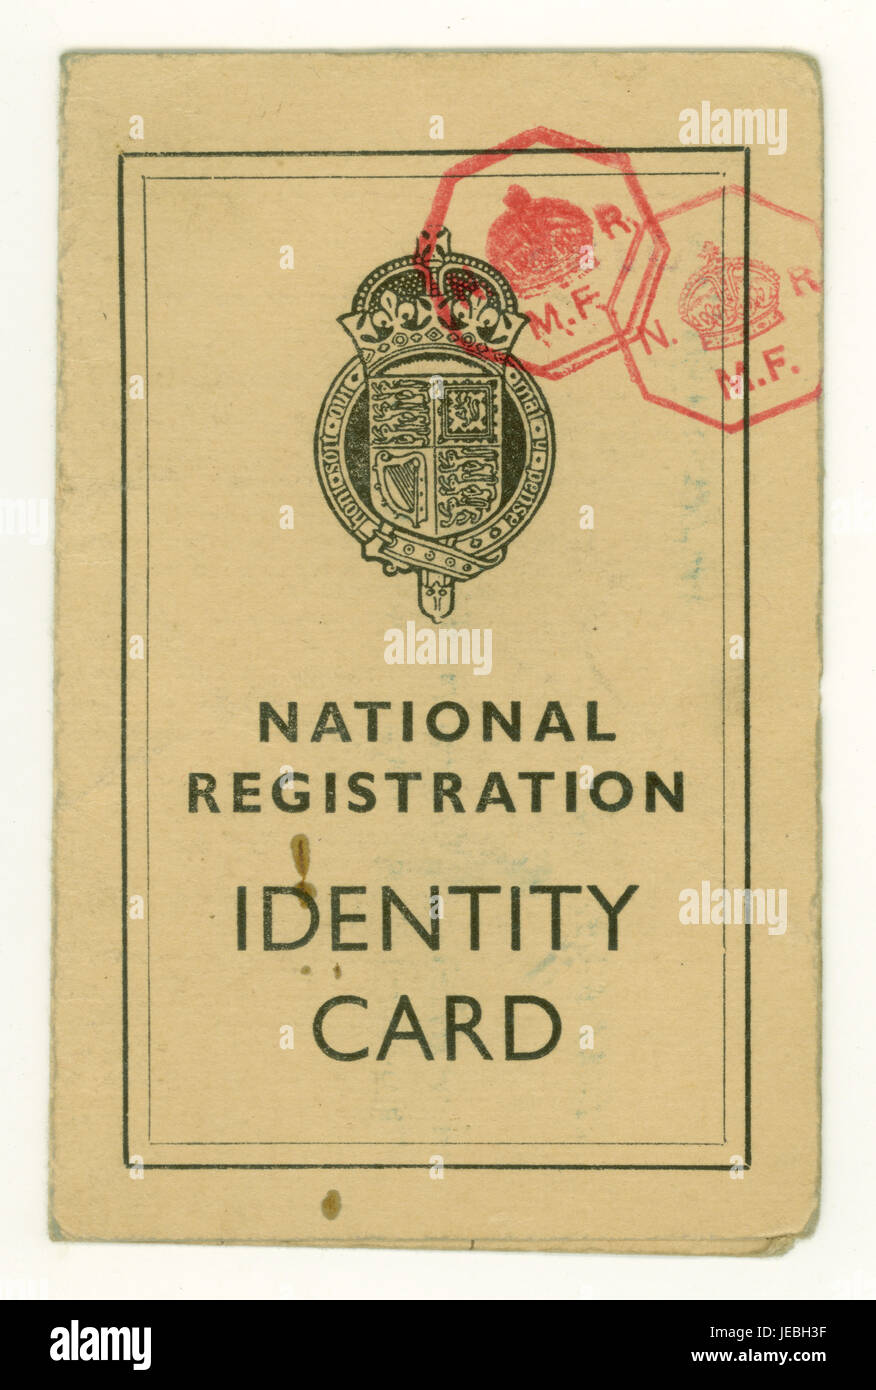 National Registration Identity Card from Wold War 2 (WW11) for a child, dated May 22nd 1940, UK - Stock Image